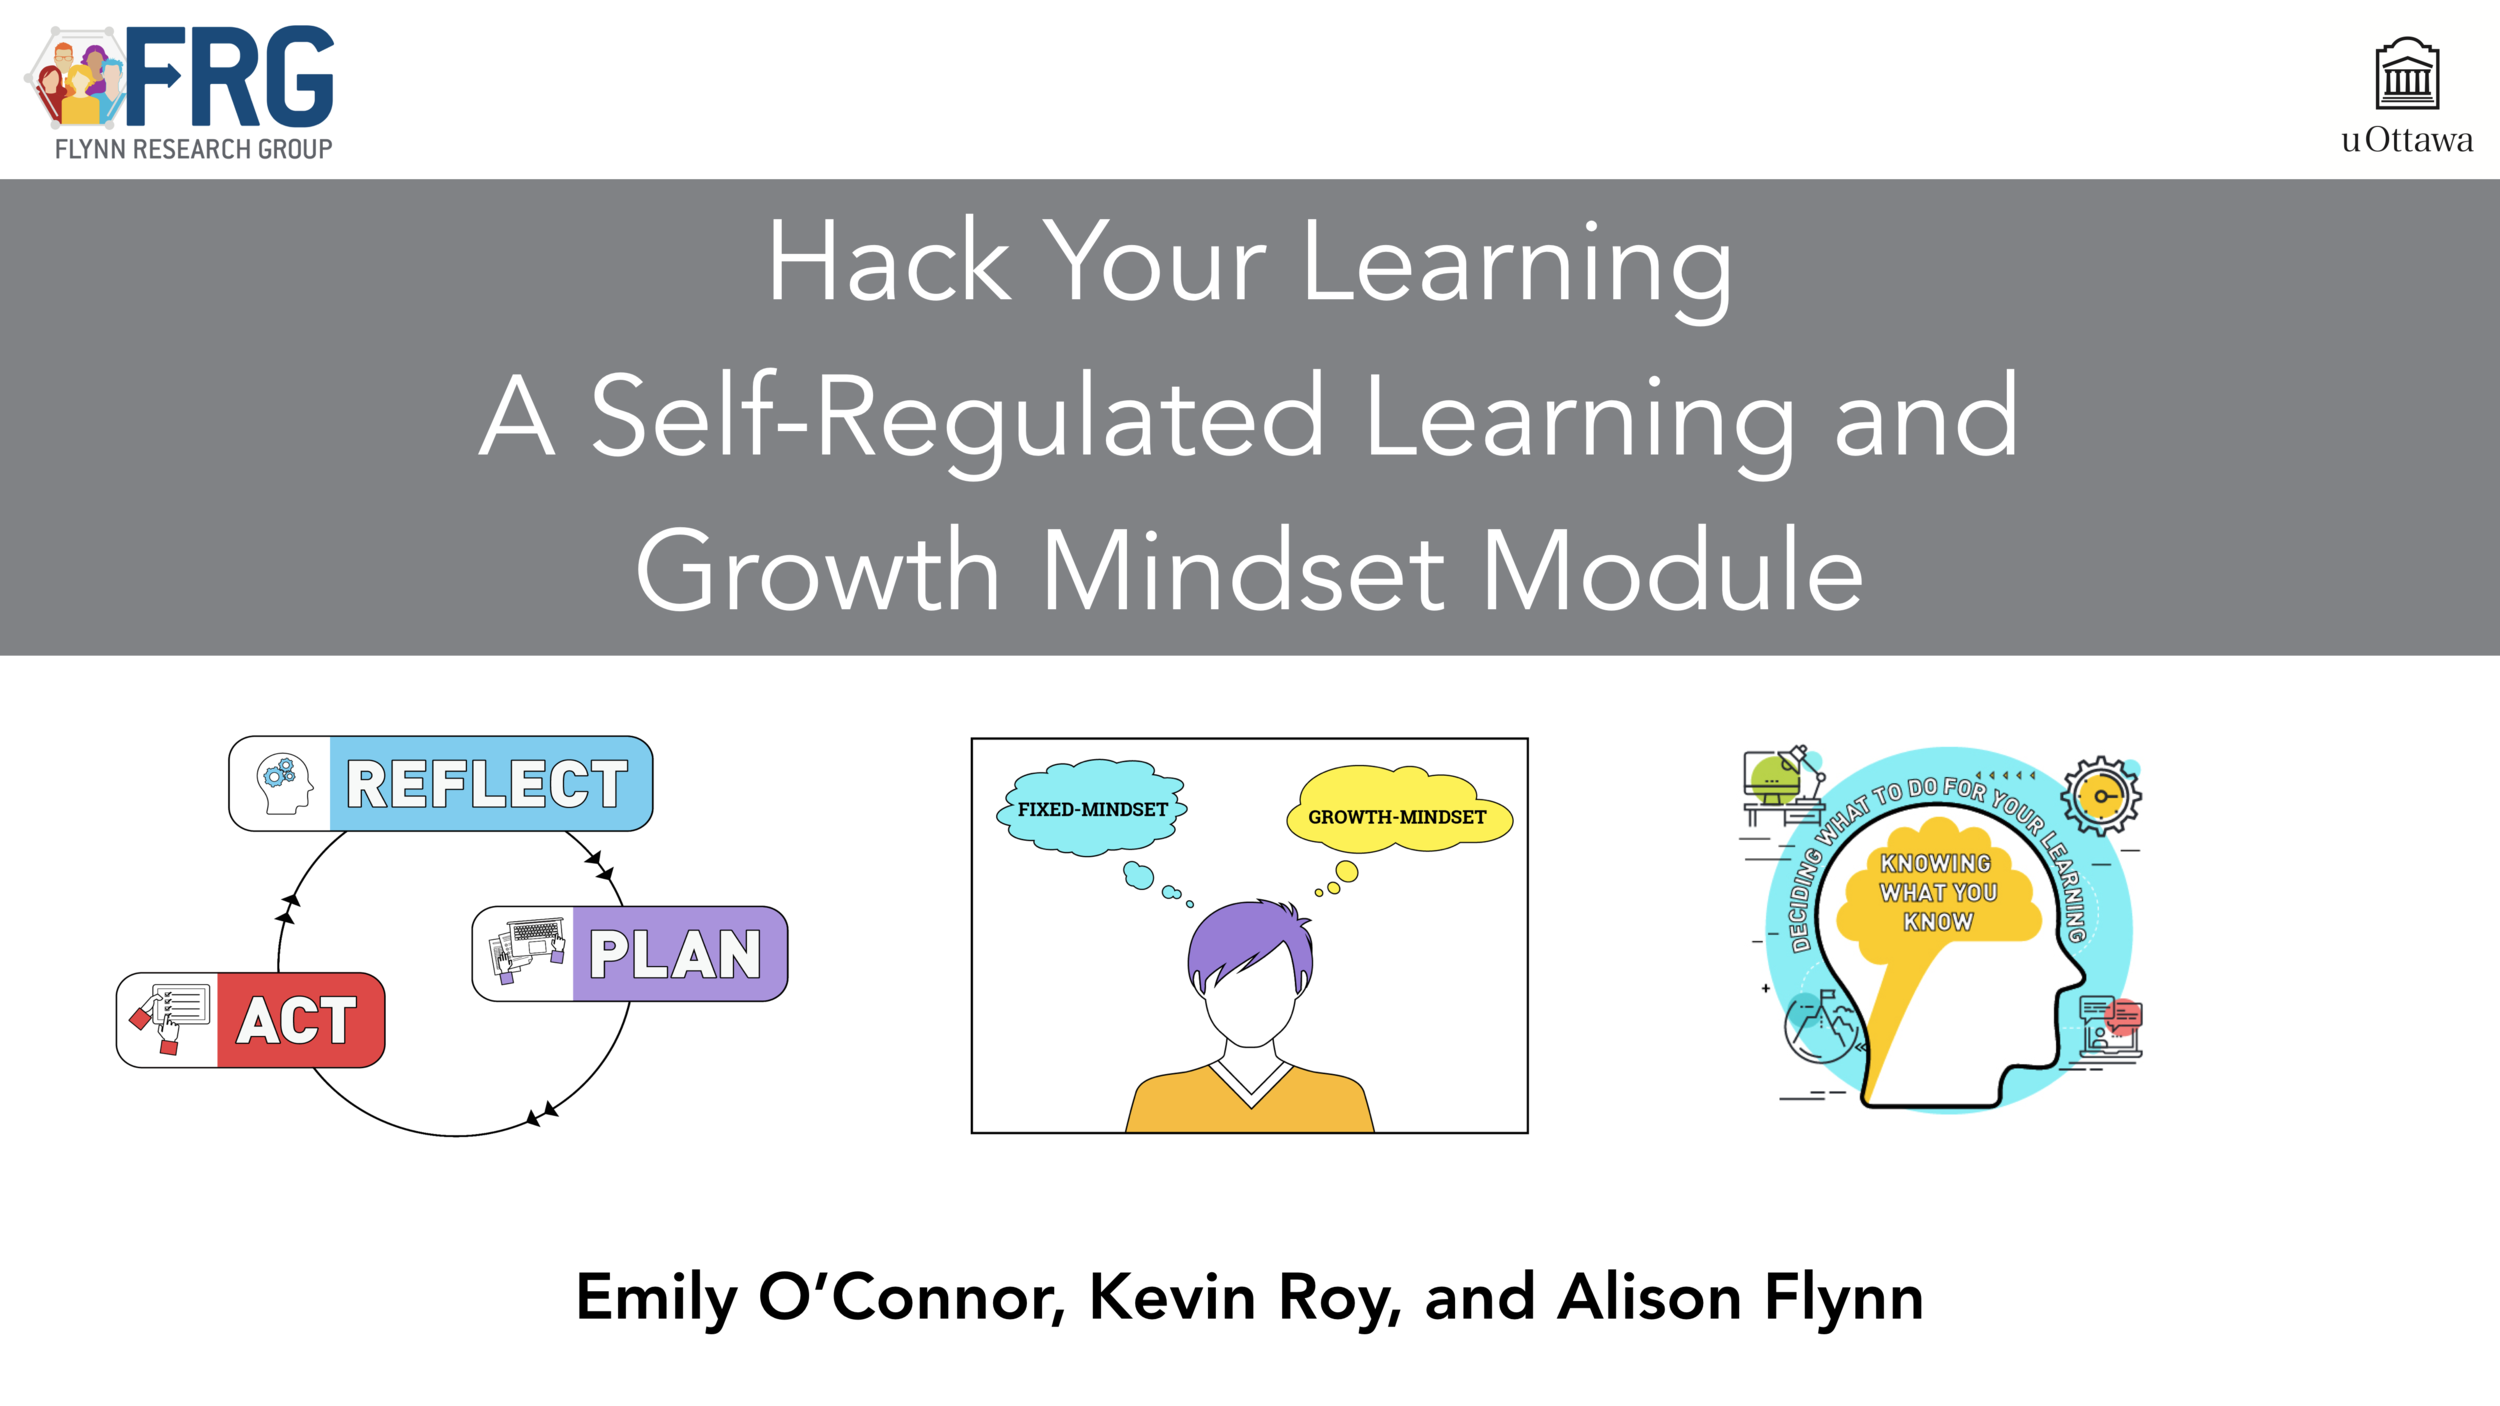 An SRL and Growth Mindset Module